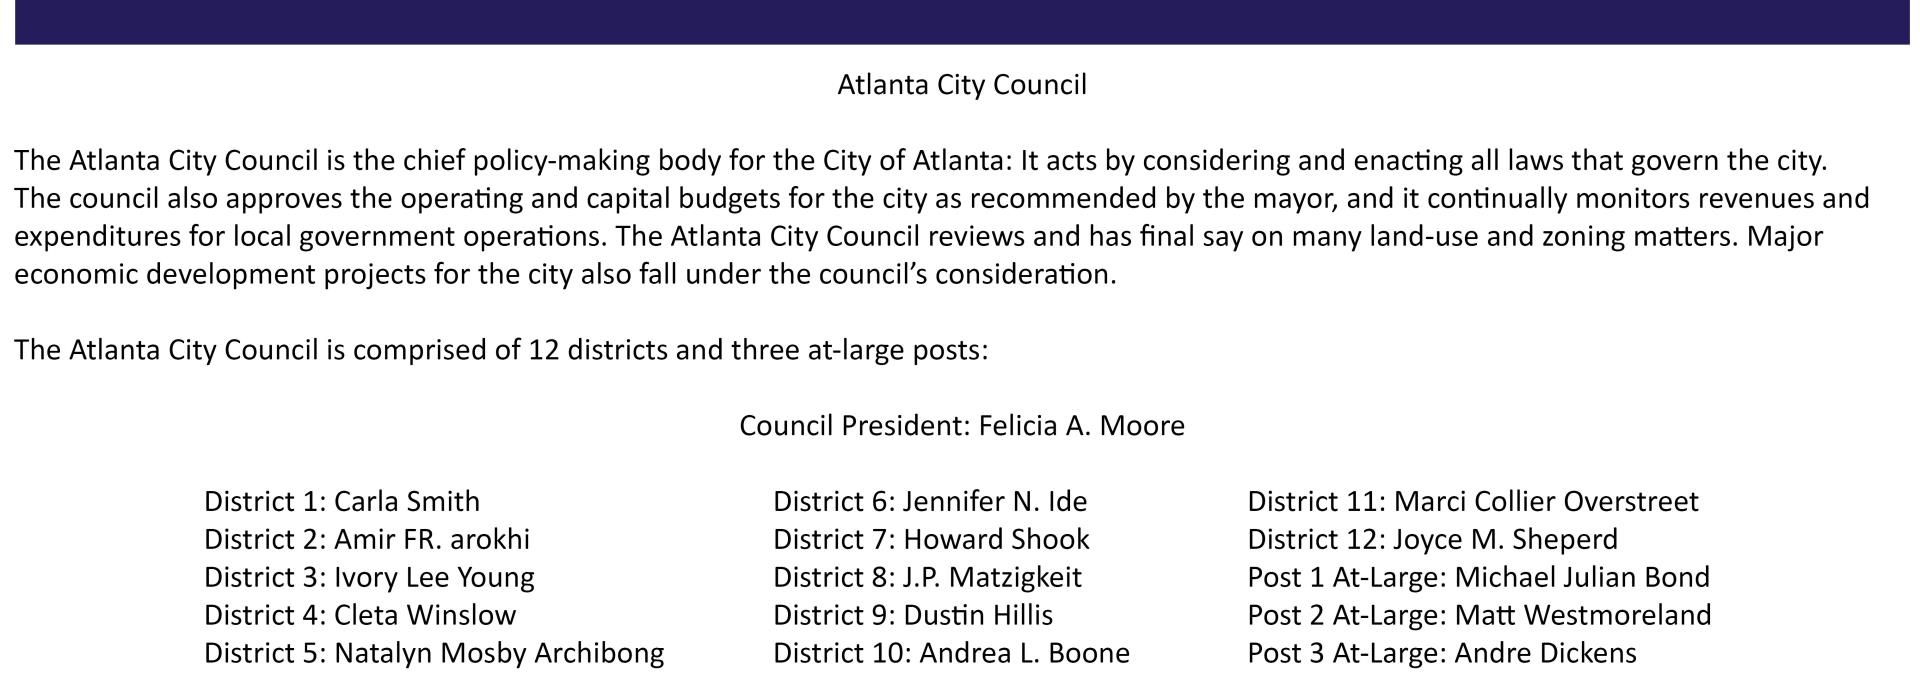 Atlanta City Council Boilerplate